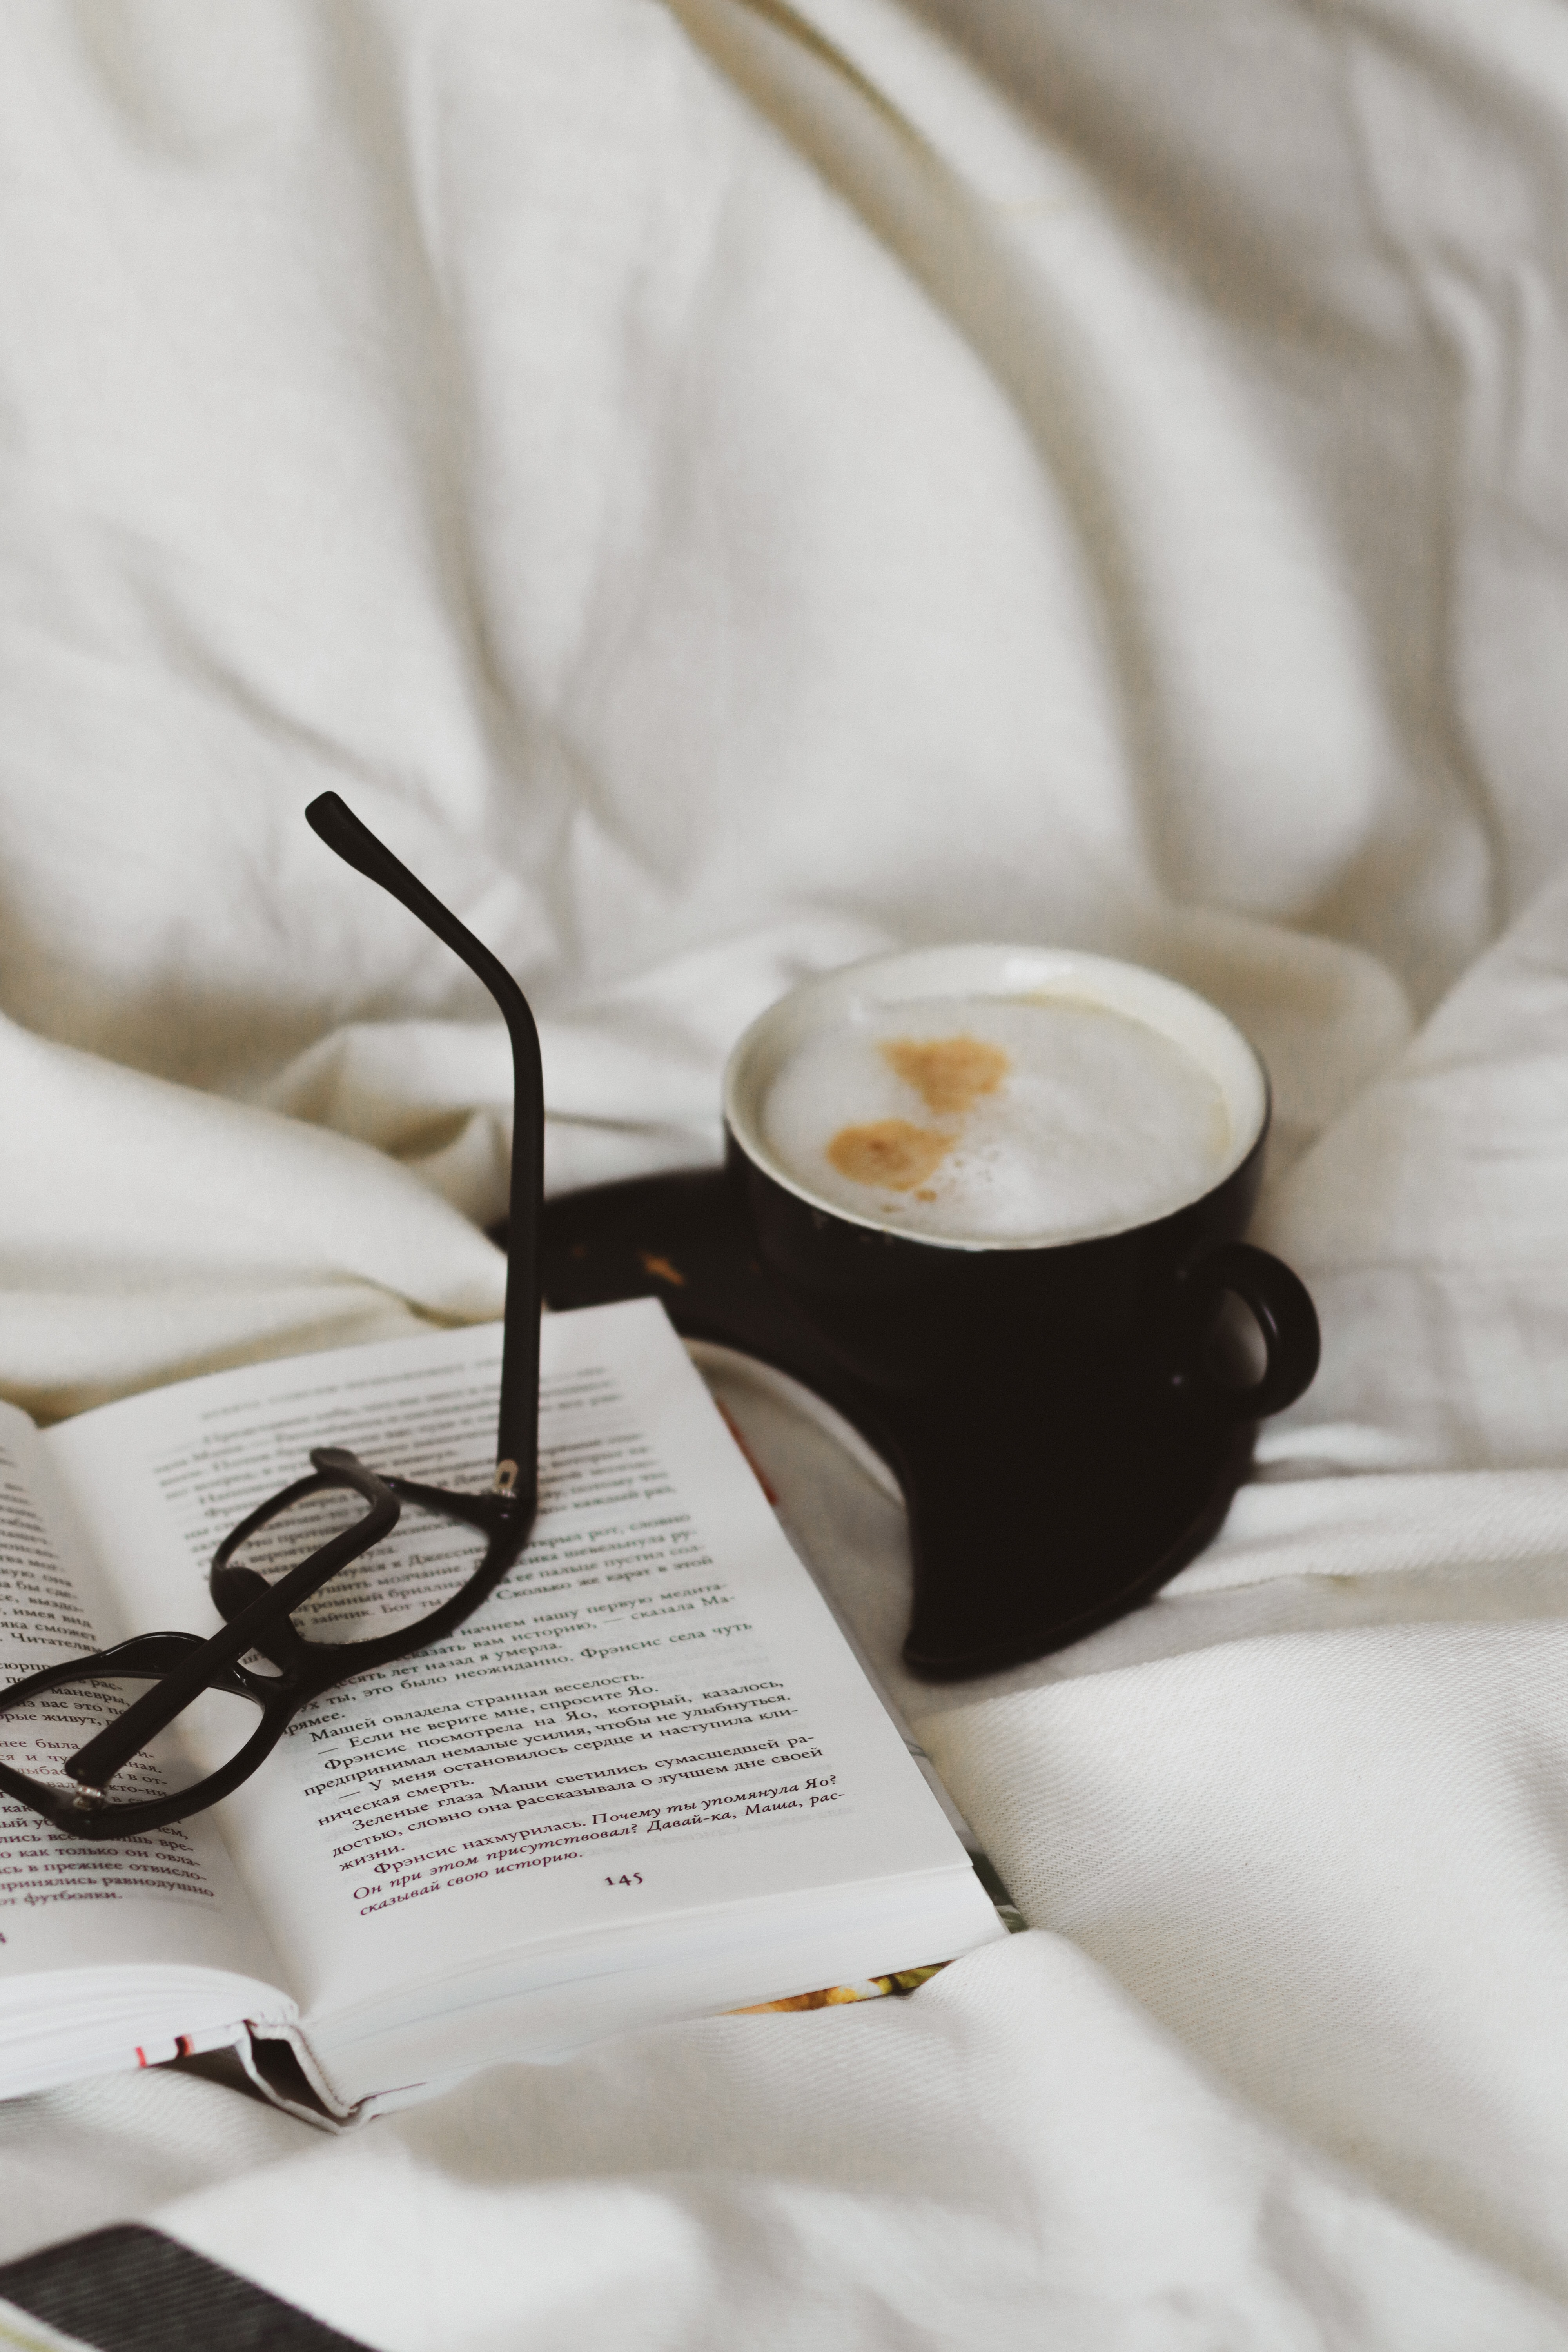 A book, a glasses, and a cup of coffee